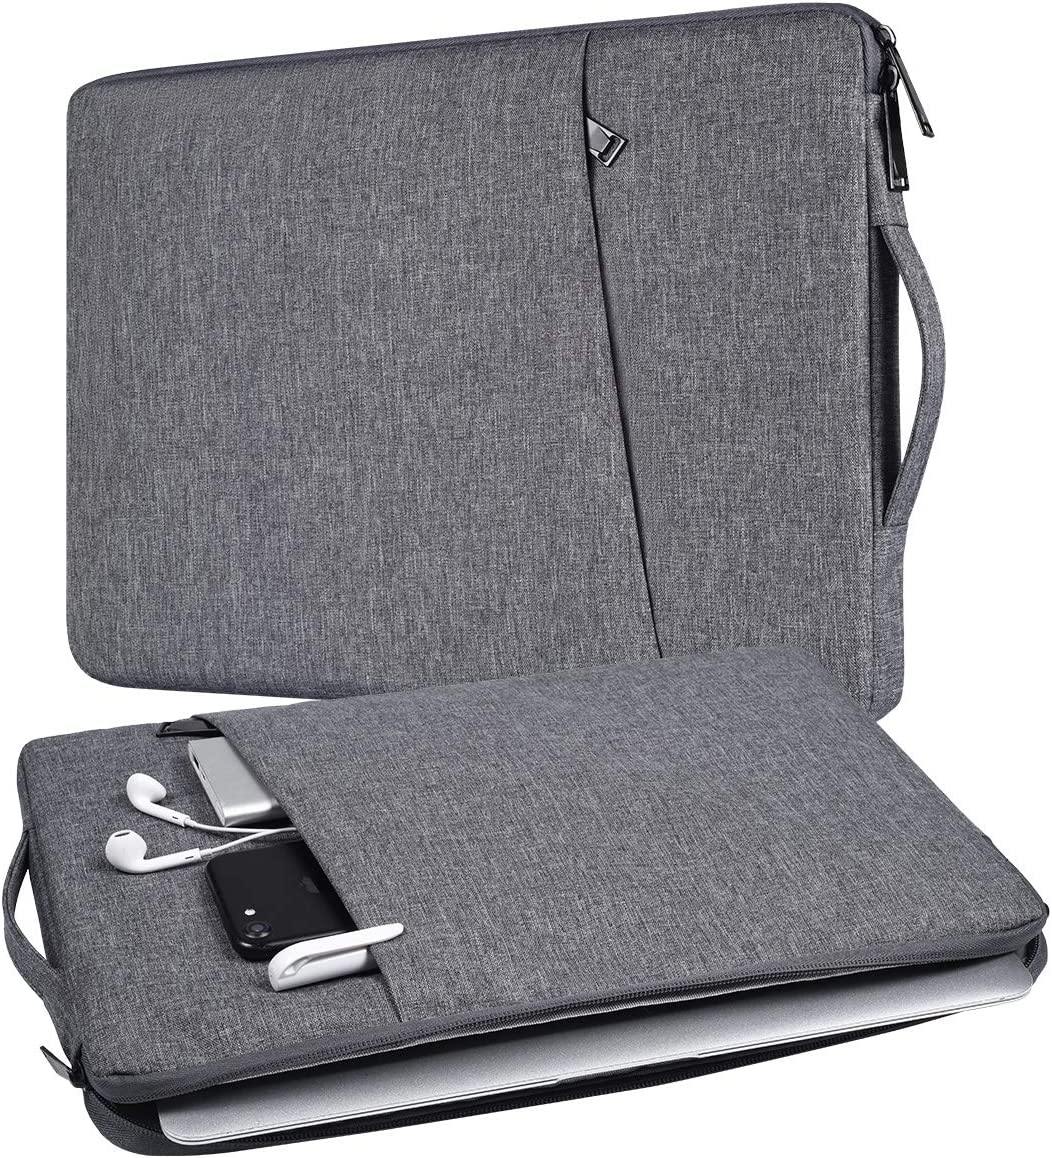 11.6 Inch Laptop Sleeve Case with Handle for Acer Chromebook R 11, Samsung Chromebook Pro/Plus,Google Pixelbook 12.3, Acer ASUS Dell HP Samsung Lenovo Chromebook 11.6 Most 11.6-12.3 inch Laptop Tablet